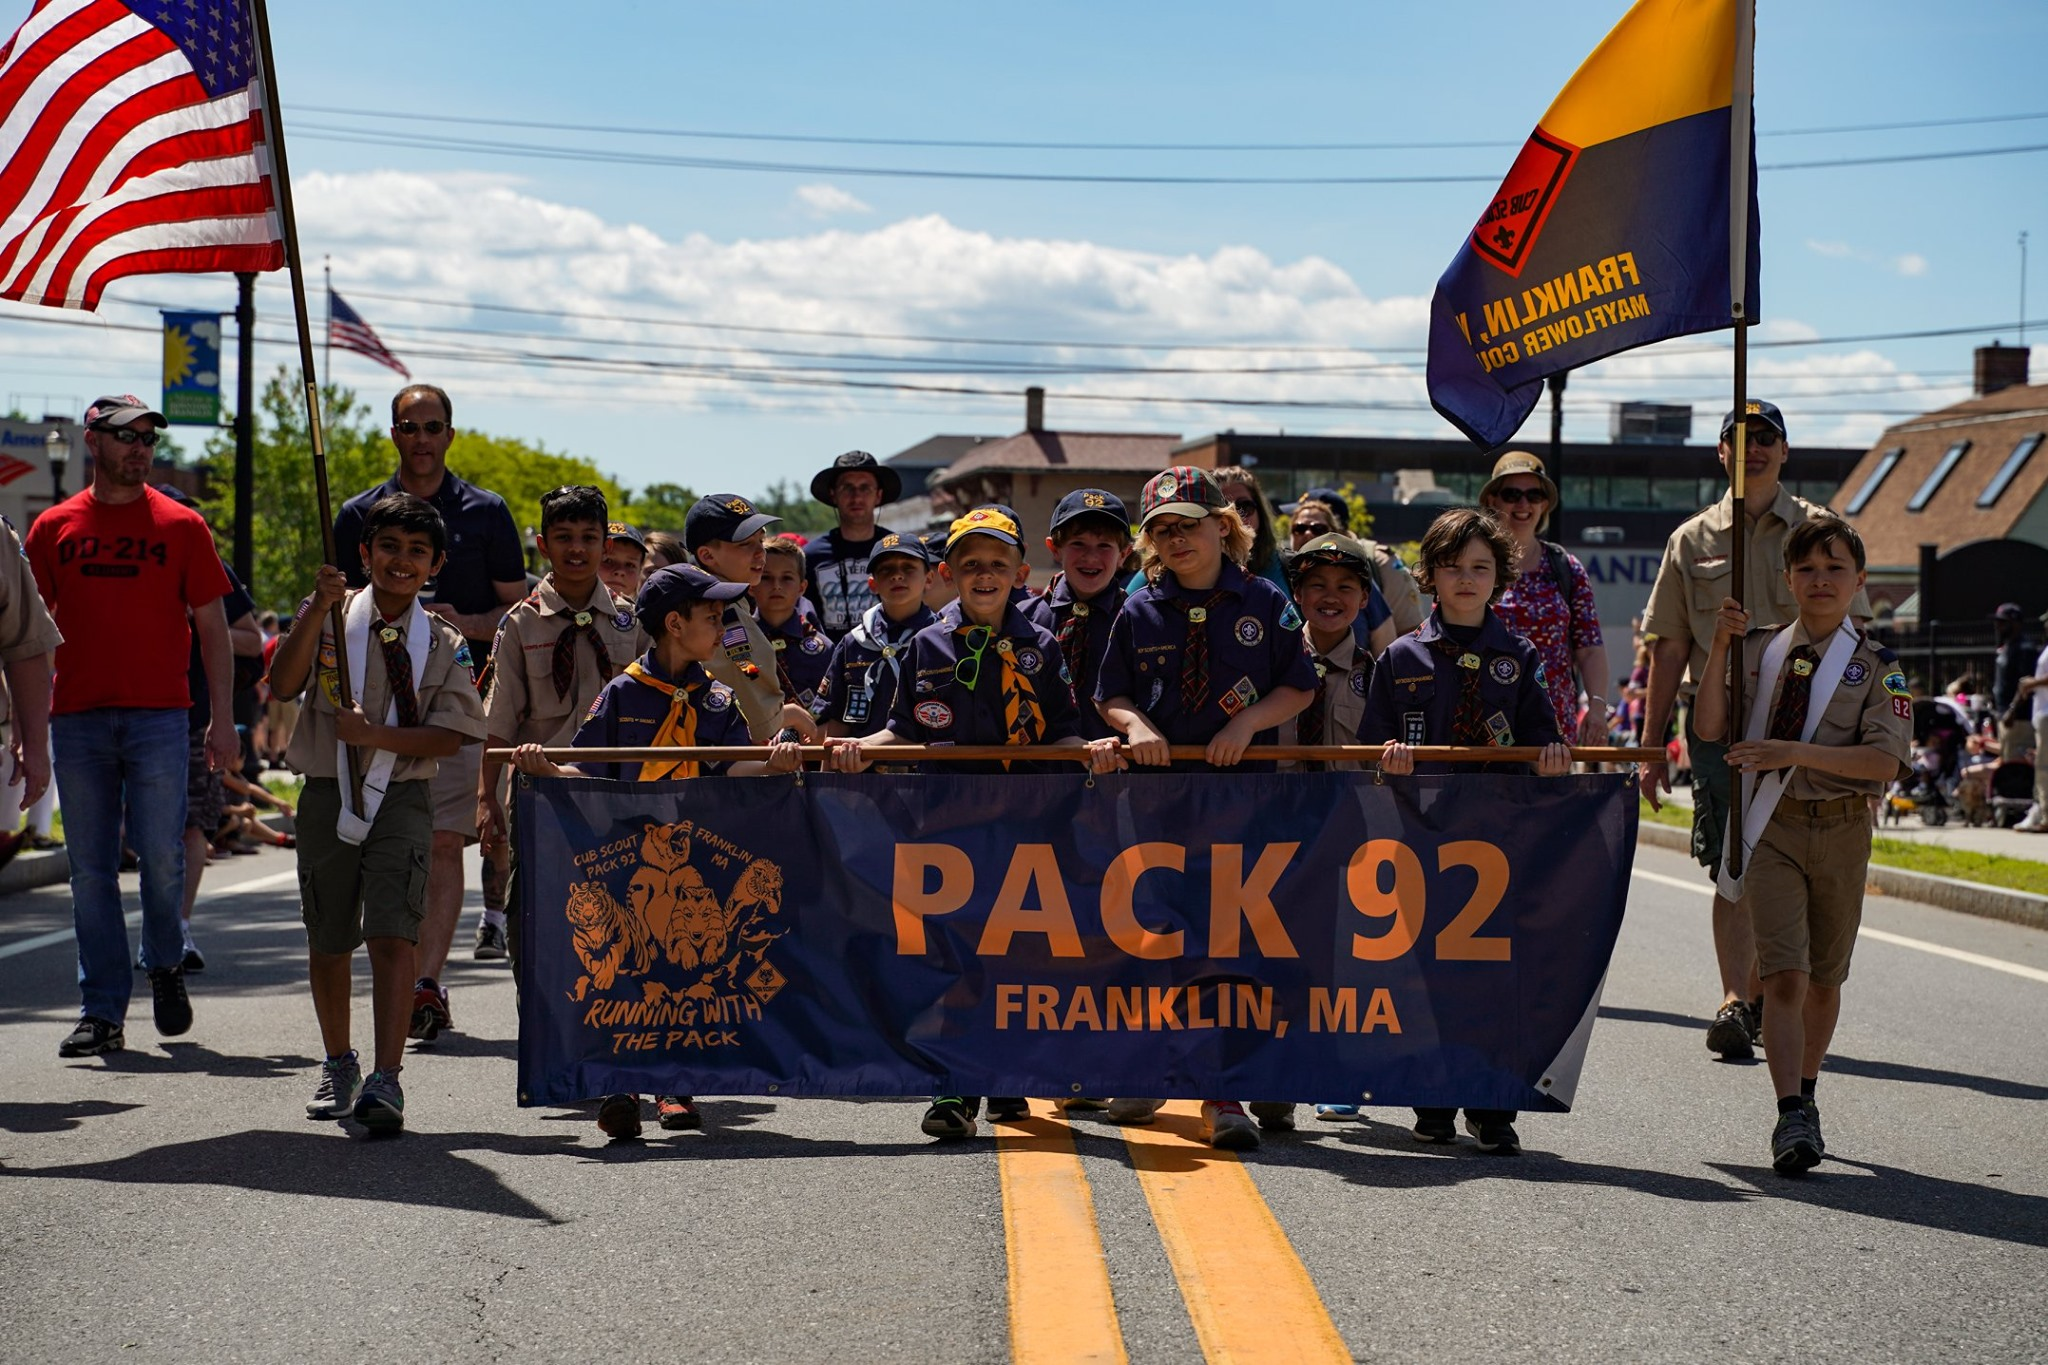 Pack 92 Parade